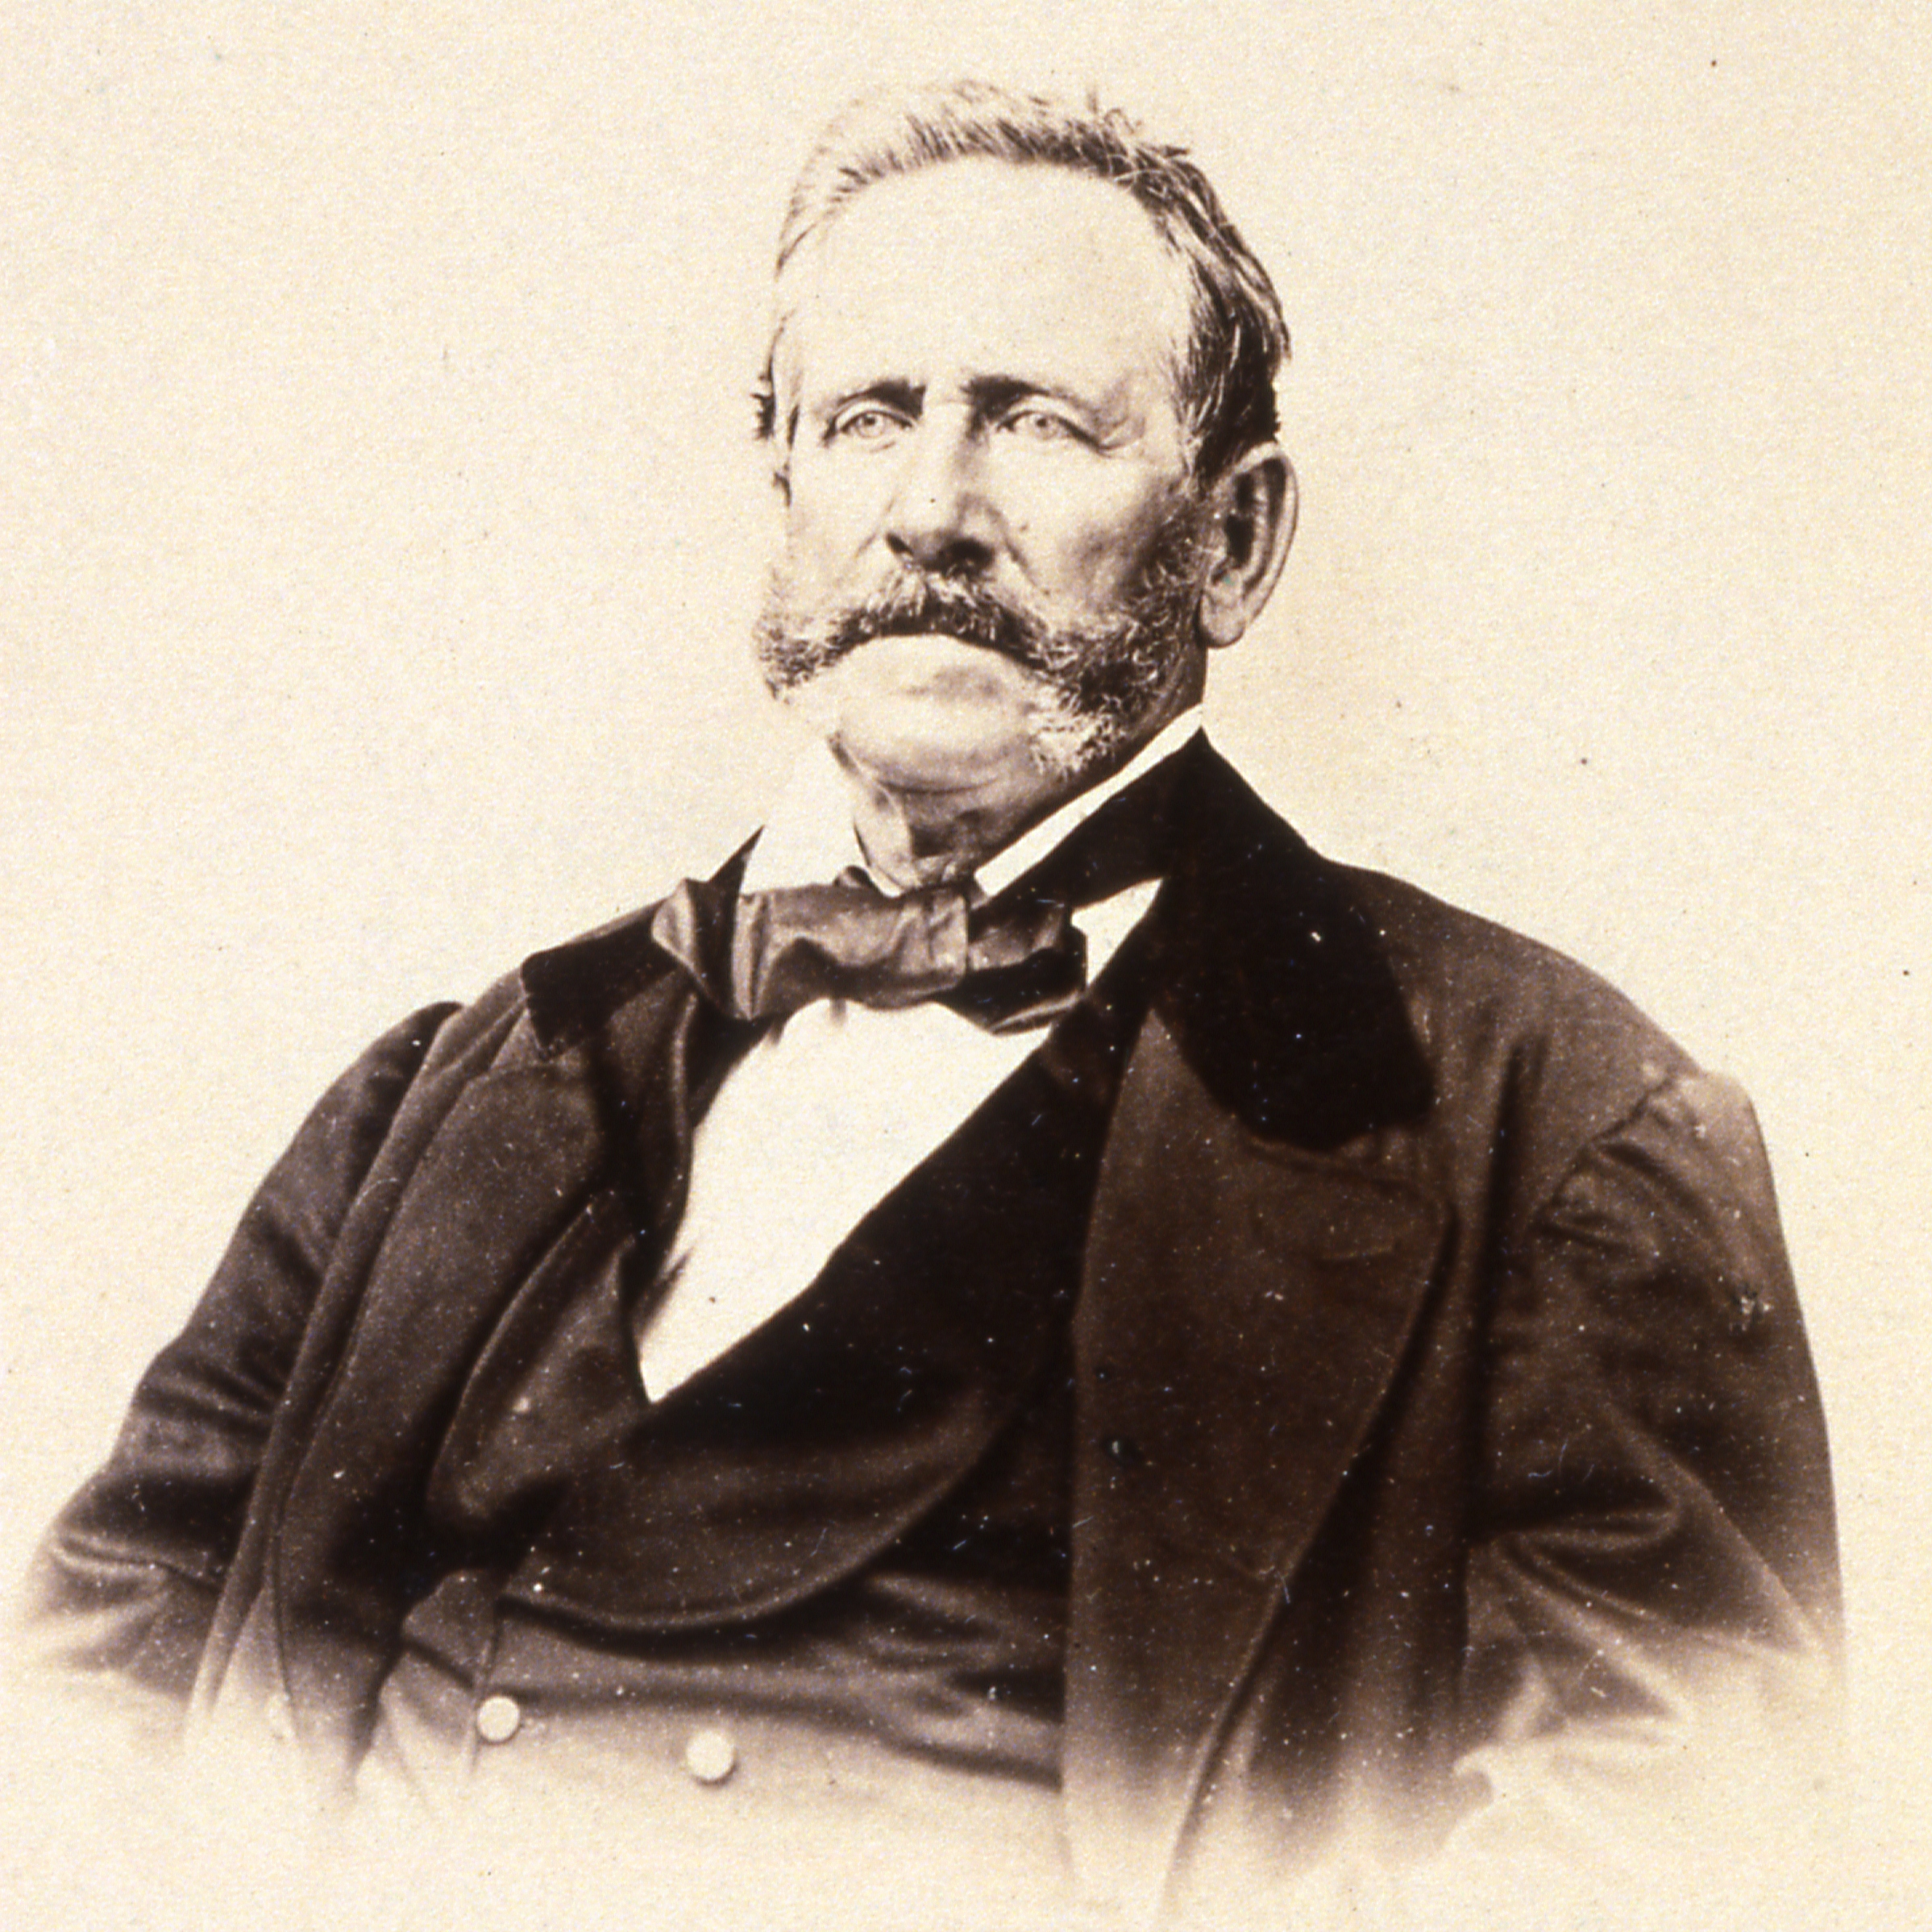 Edward Hunter in the 1870s